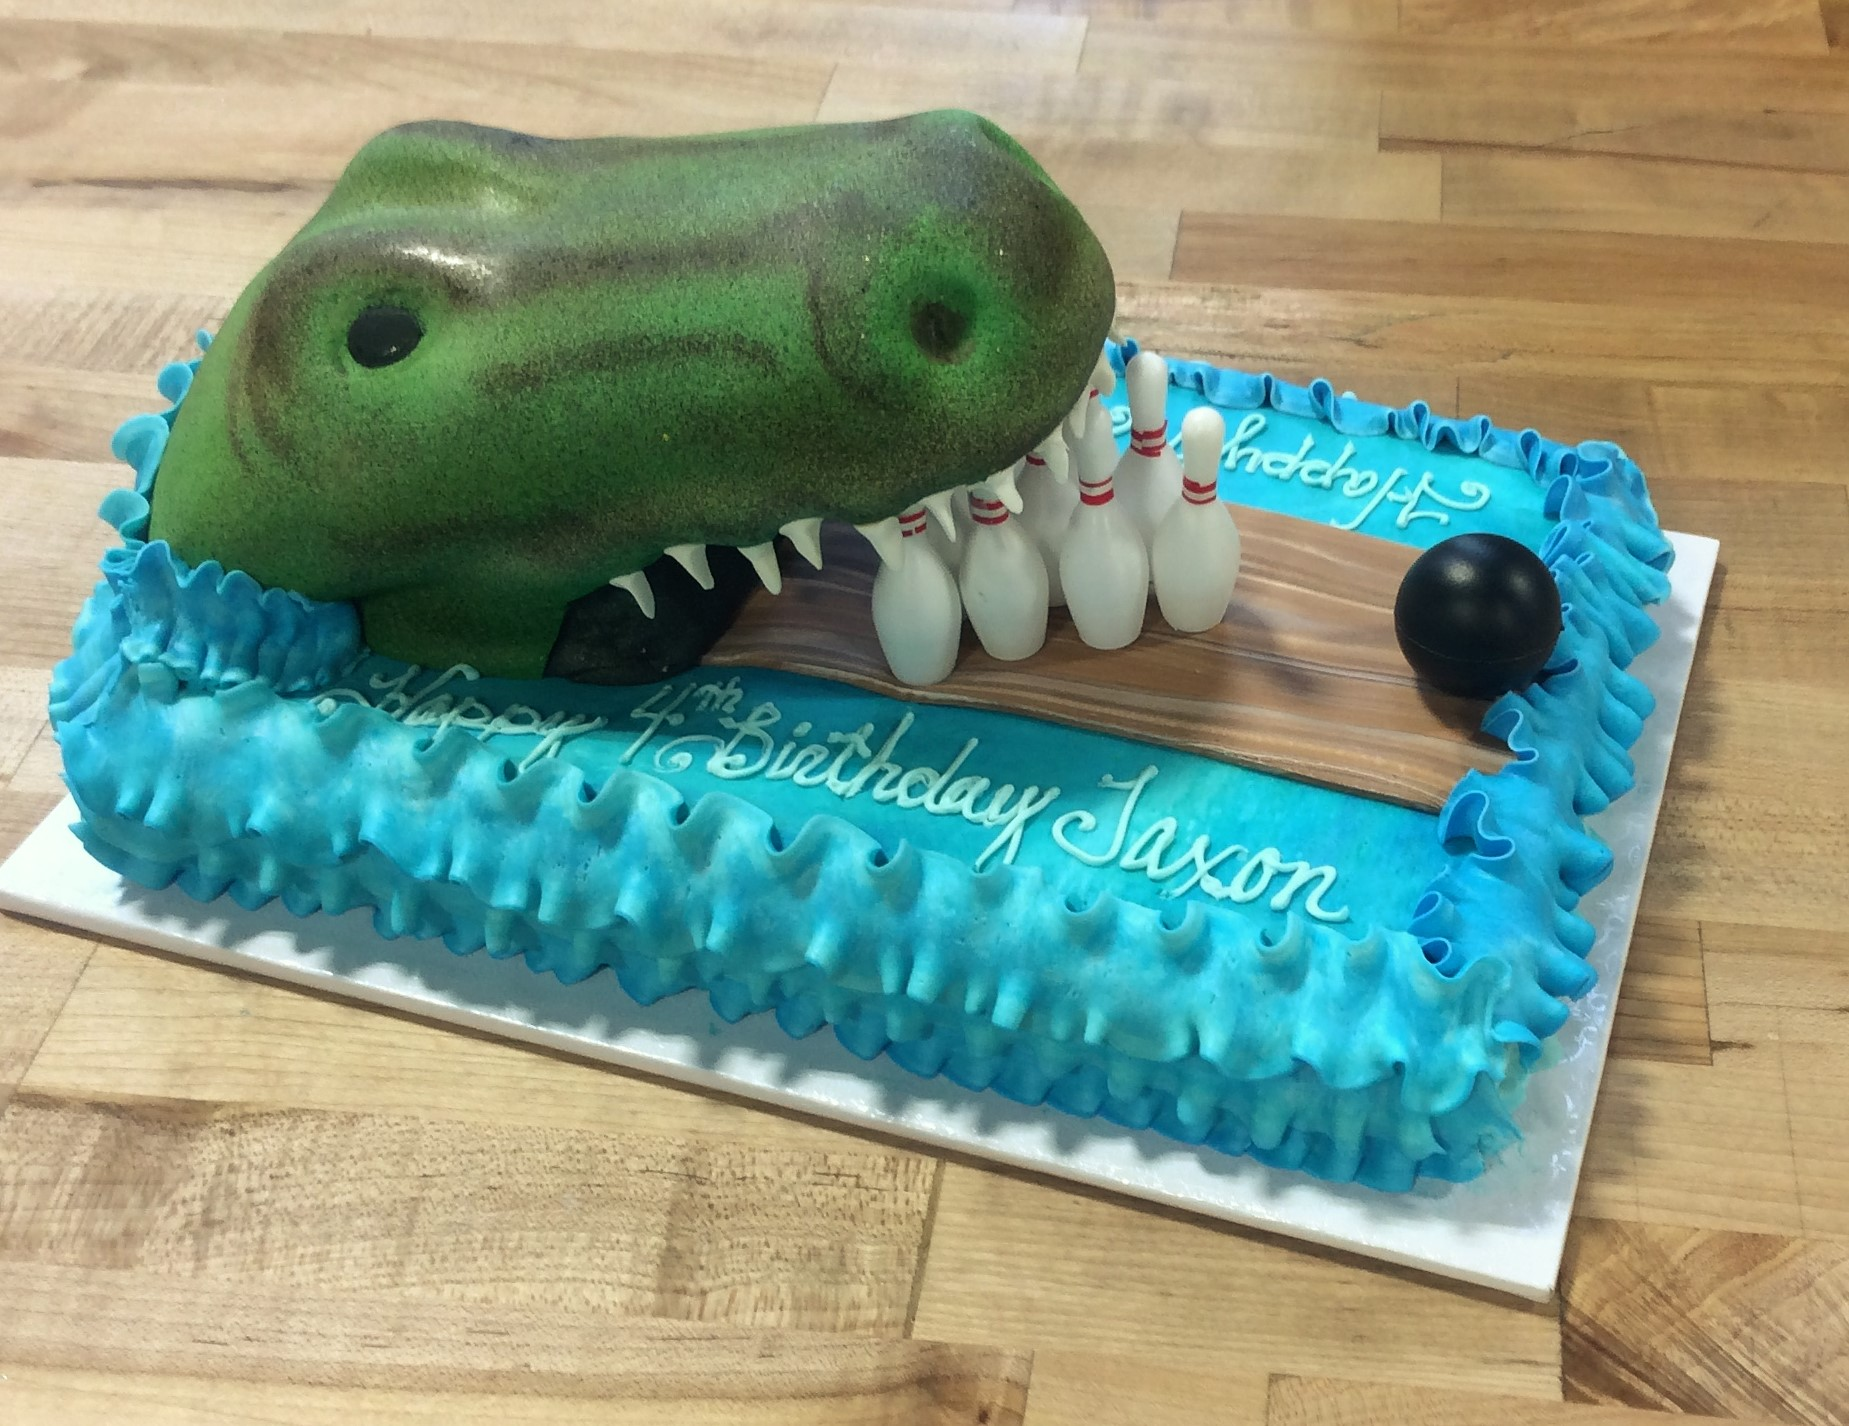 Sheet Cake with Sculpted Alligator and Bowling Scene